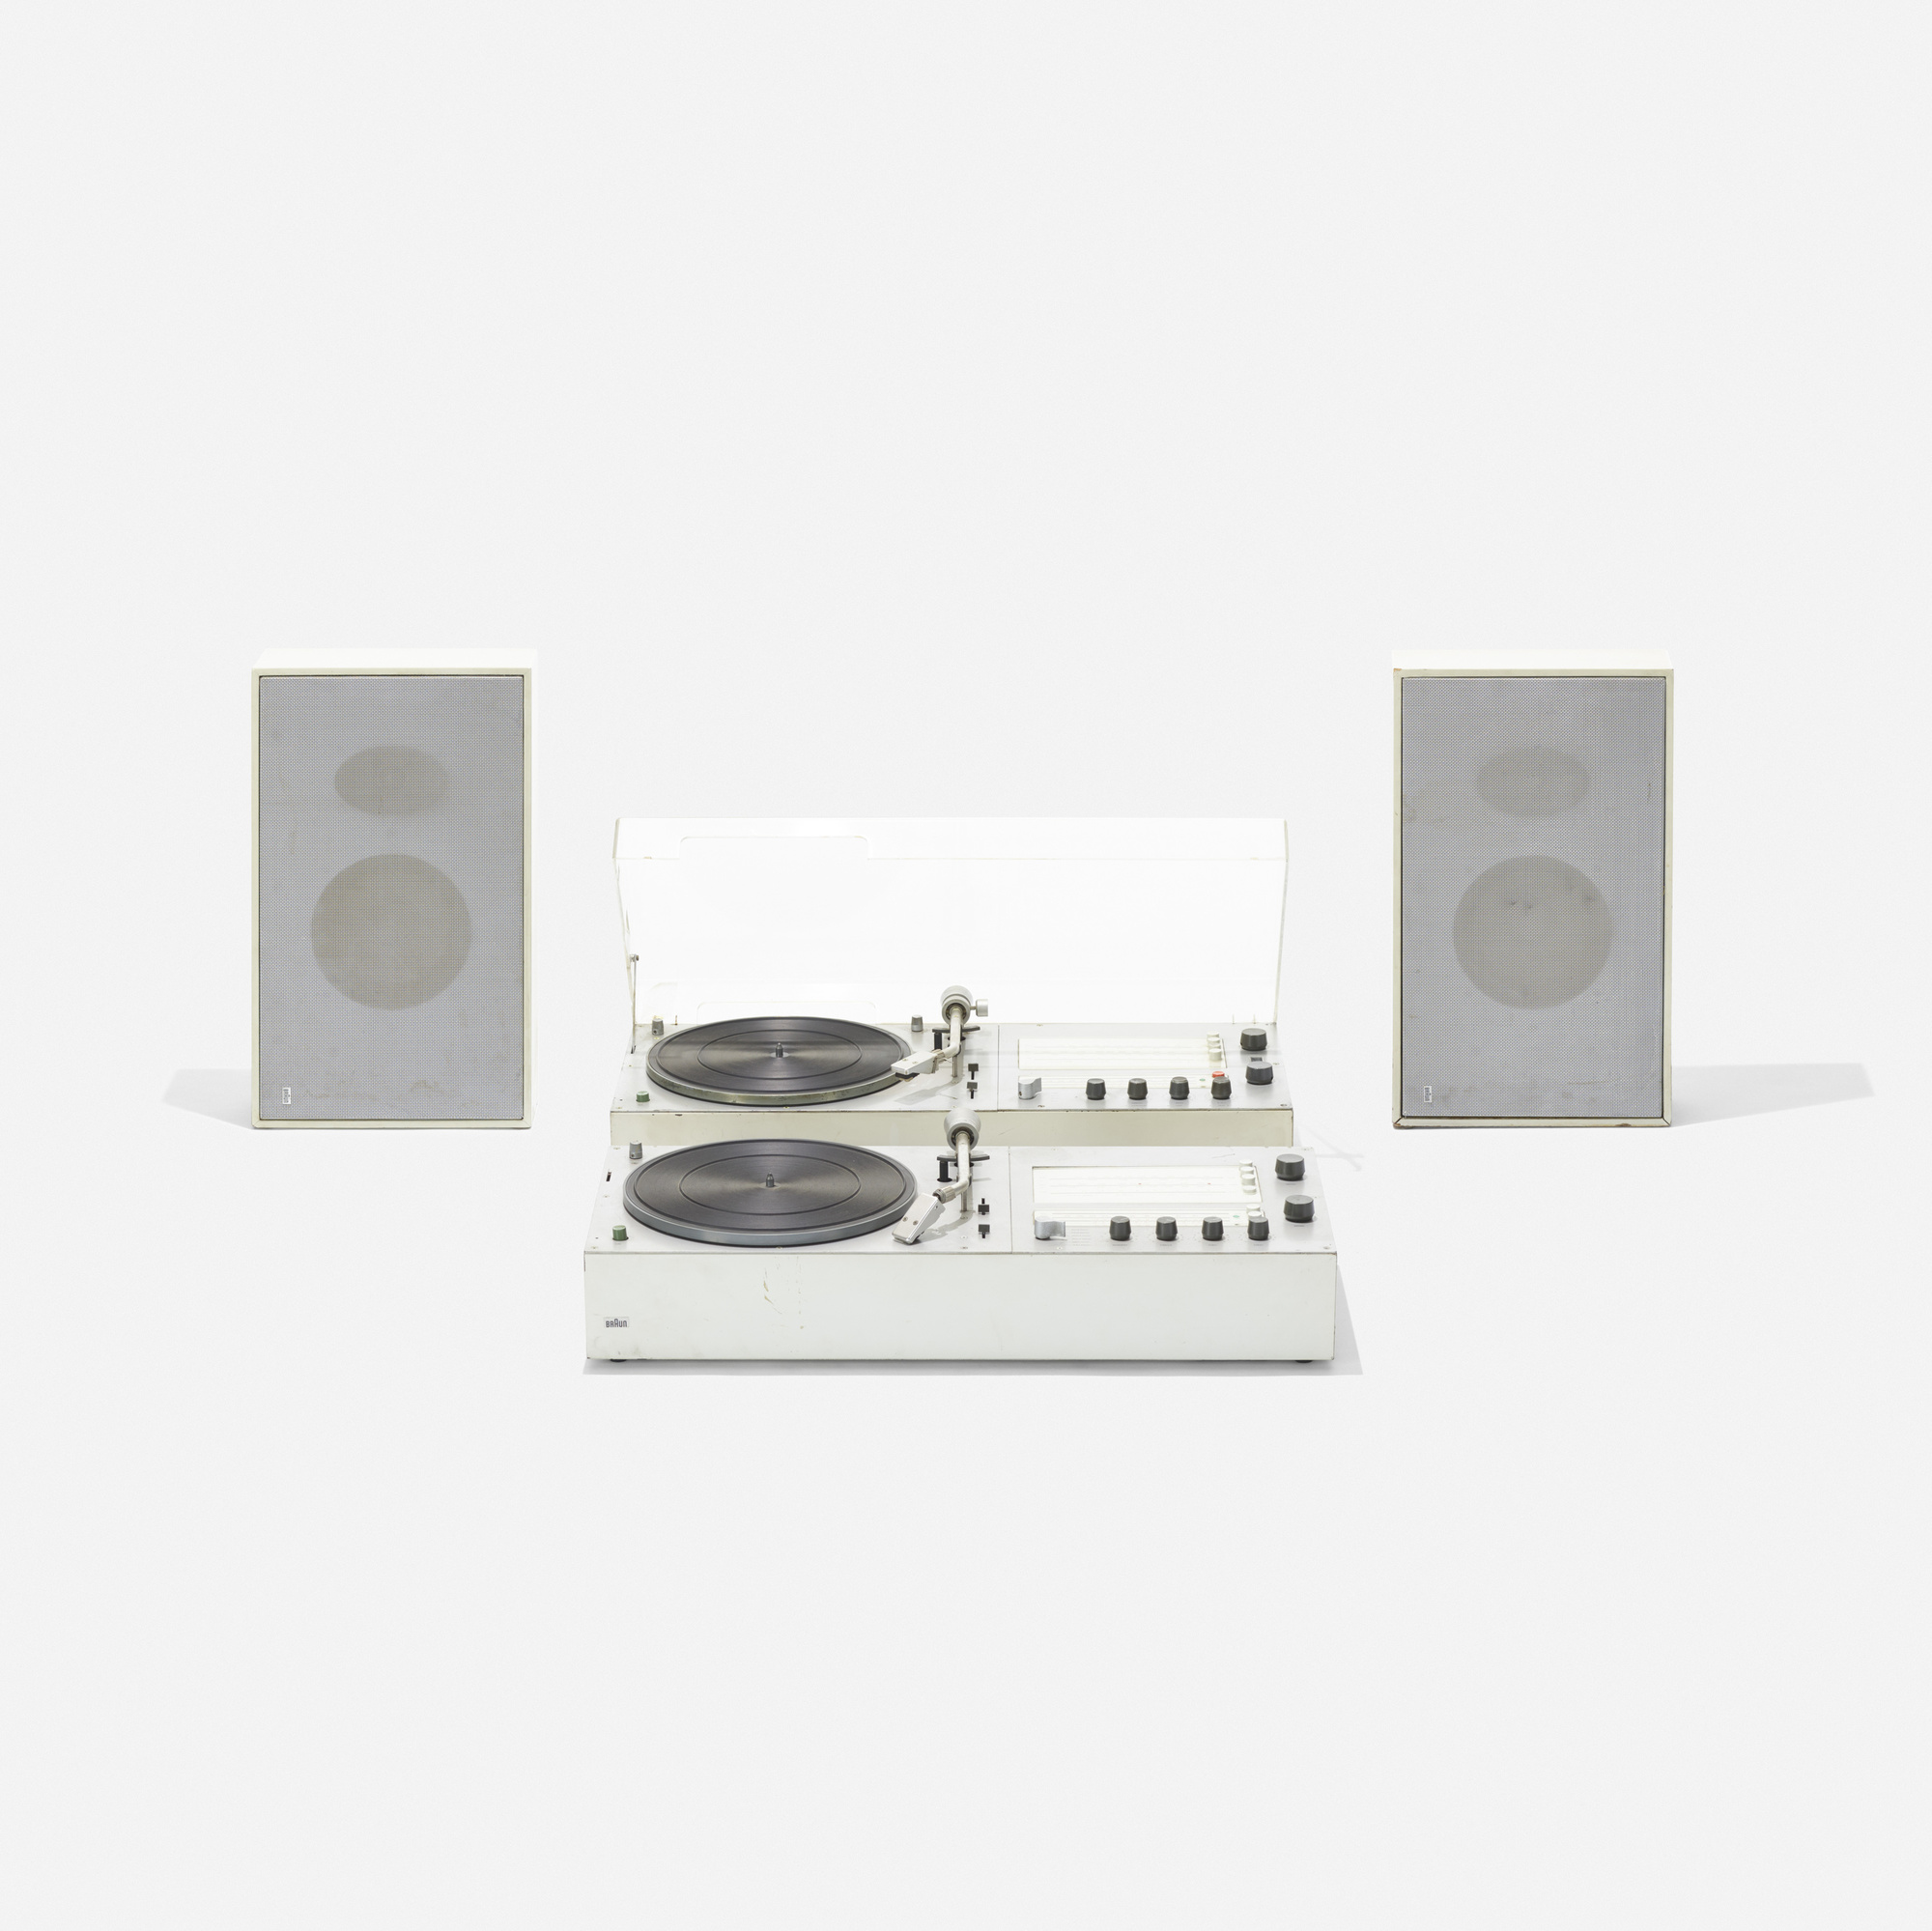 369: Dieter Rams / Audio 1 Radio-Phonographs with speakers, pair (1 of 2)